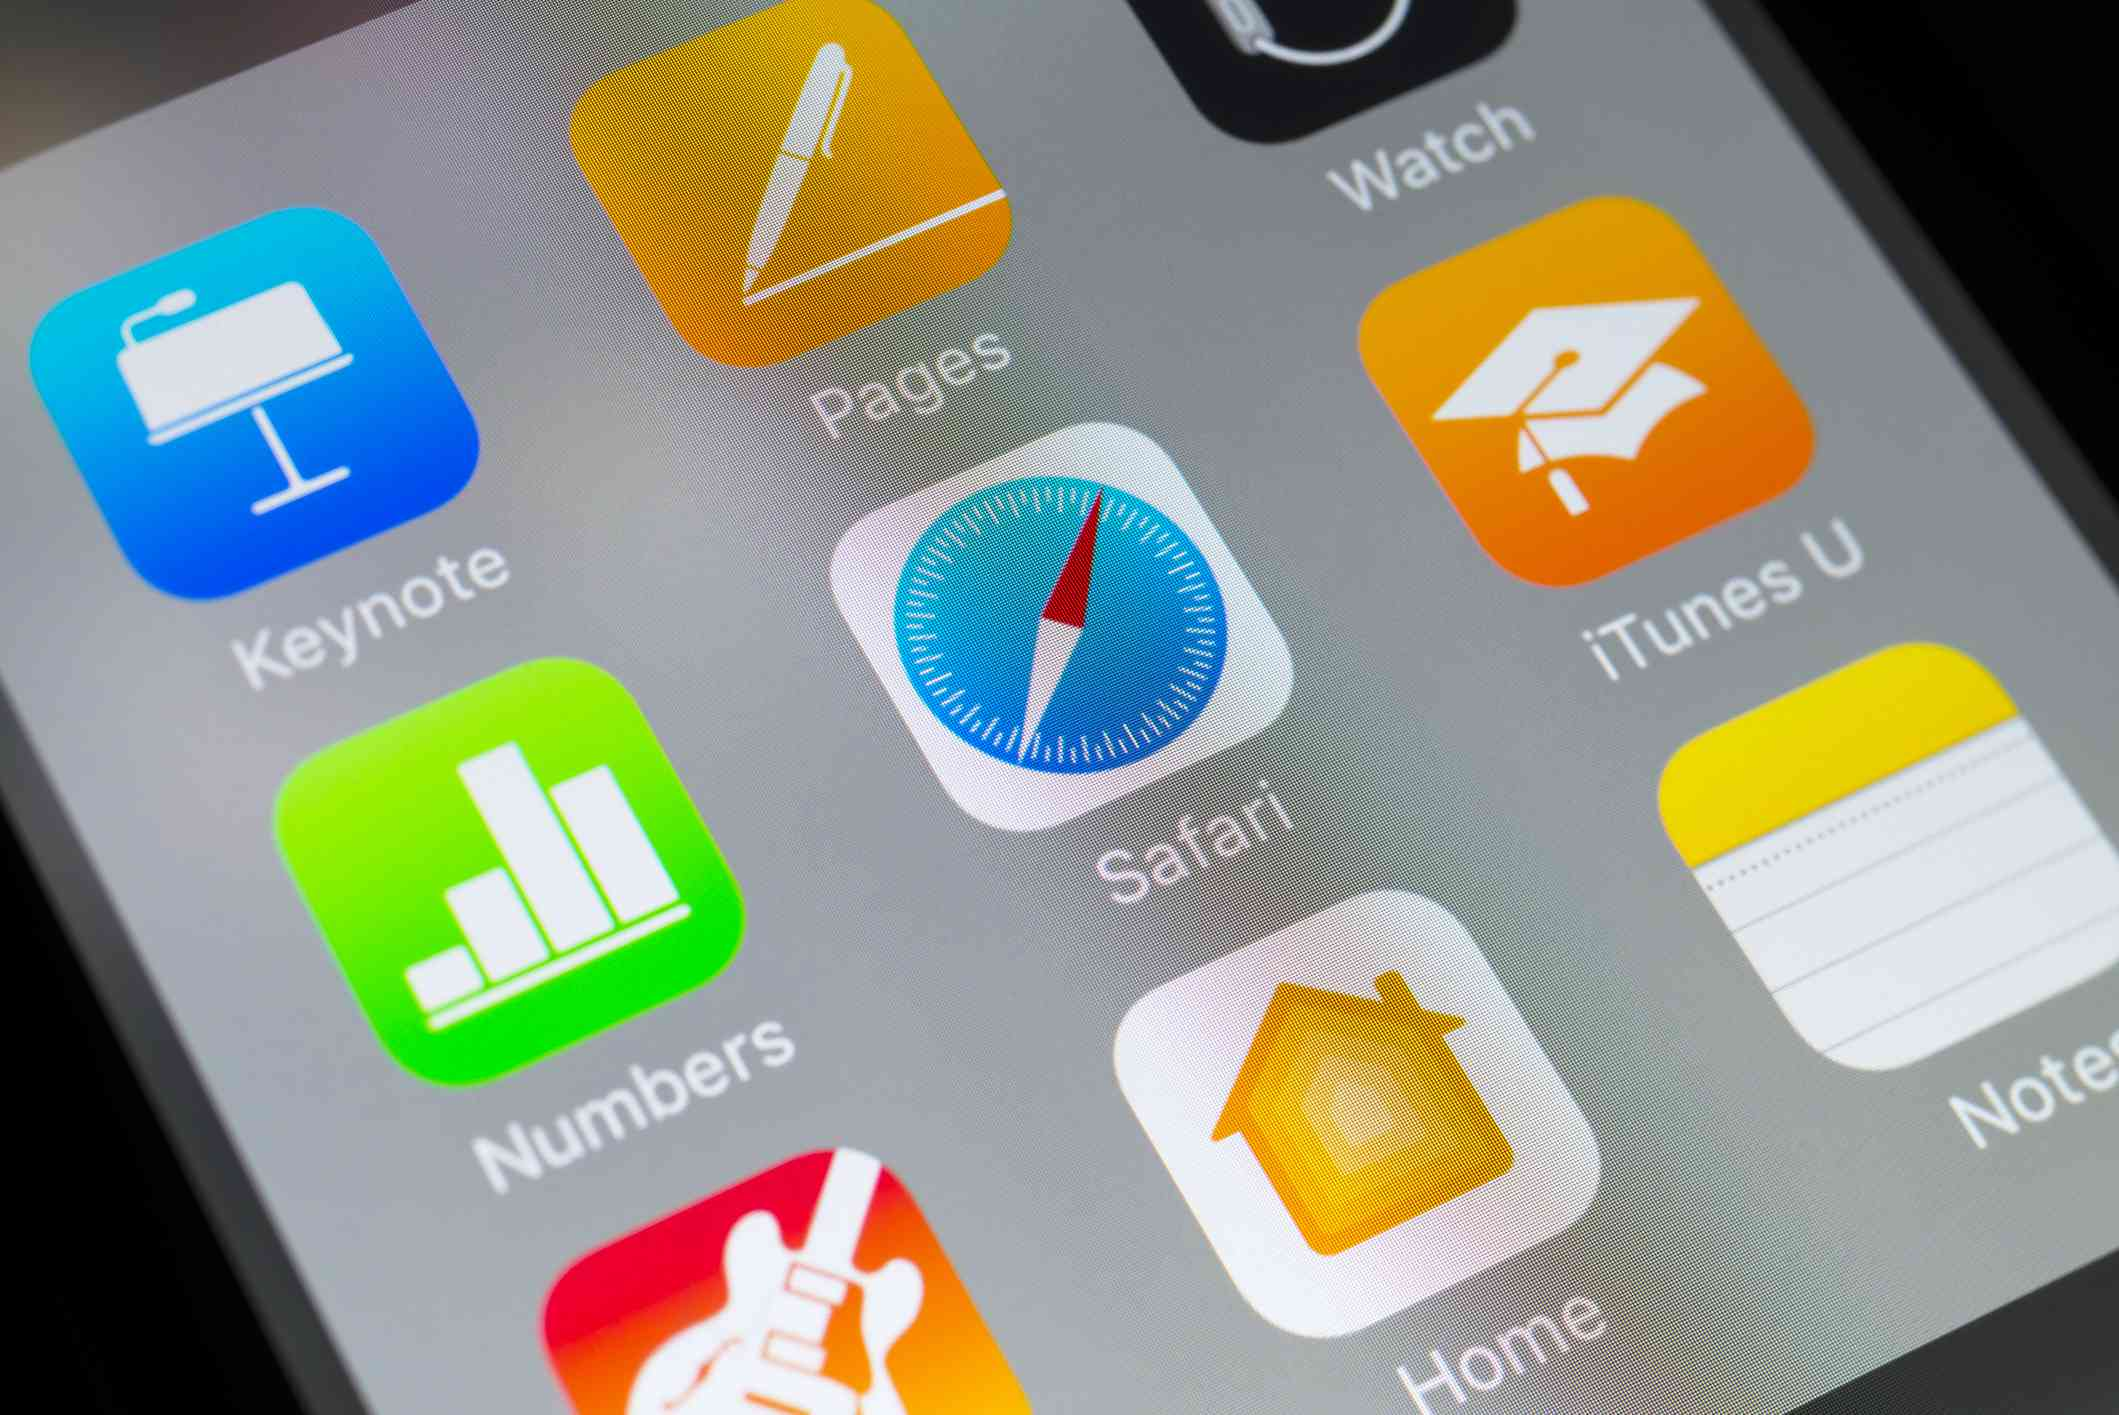 Safari, Numbers, iTunes U and other Apple apps on cellphone